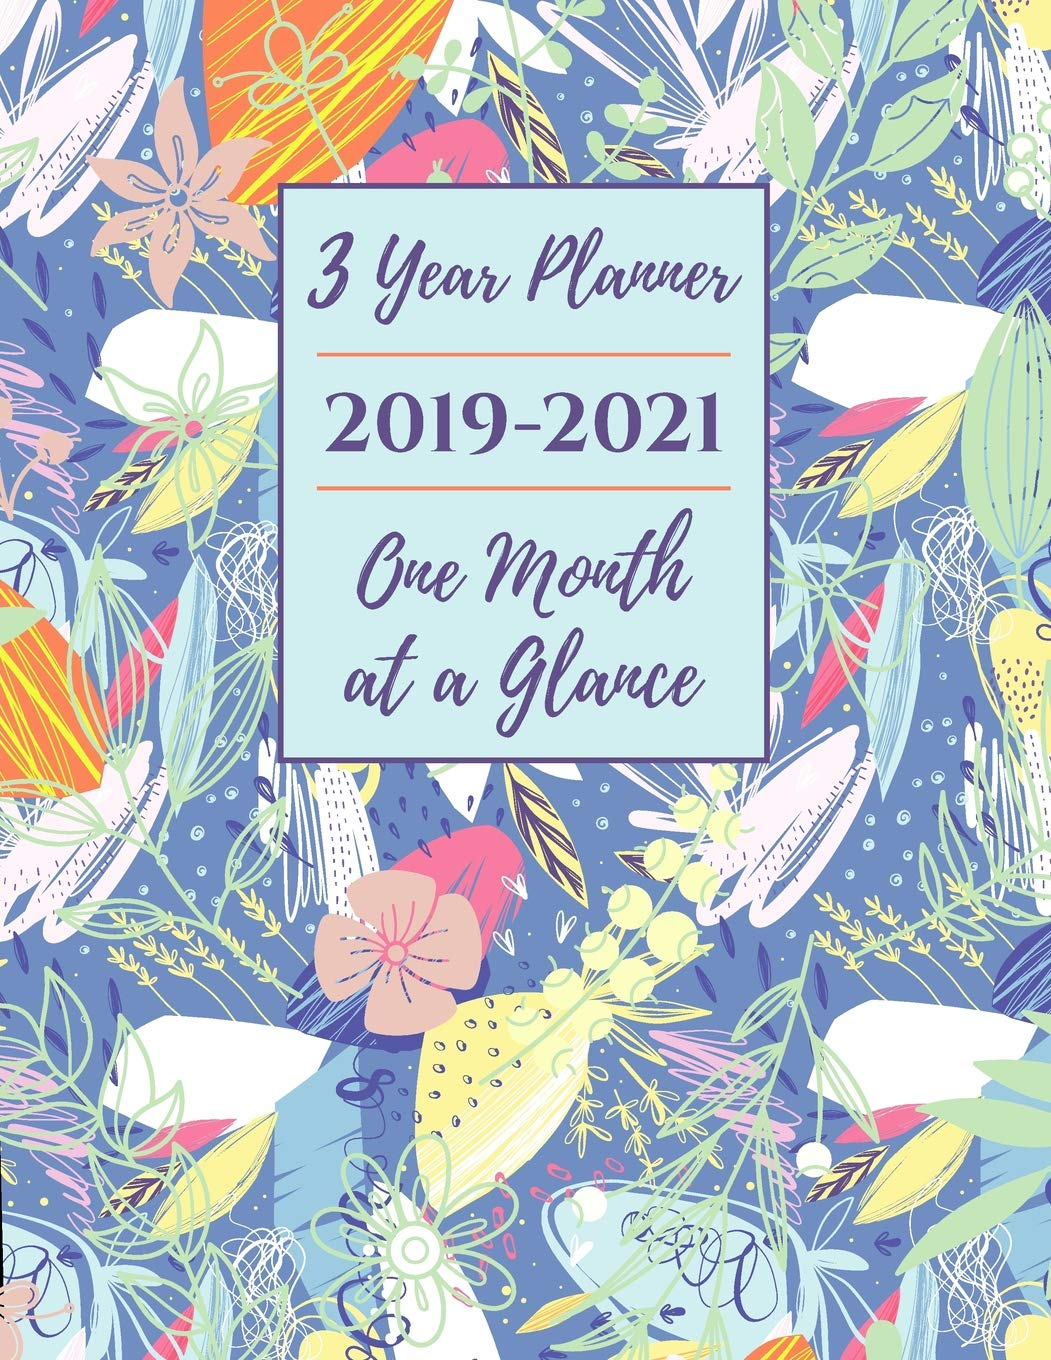 3 Year Planner 2019-2021 One Month at a Glance: Big Monthly ...